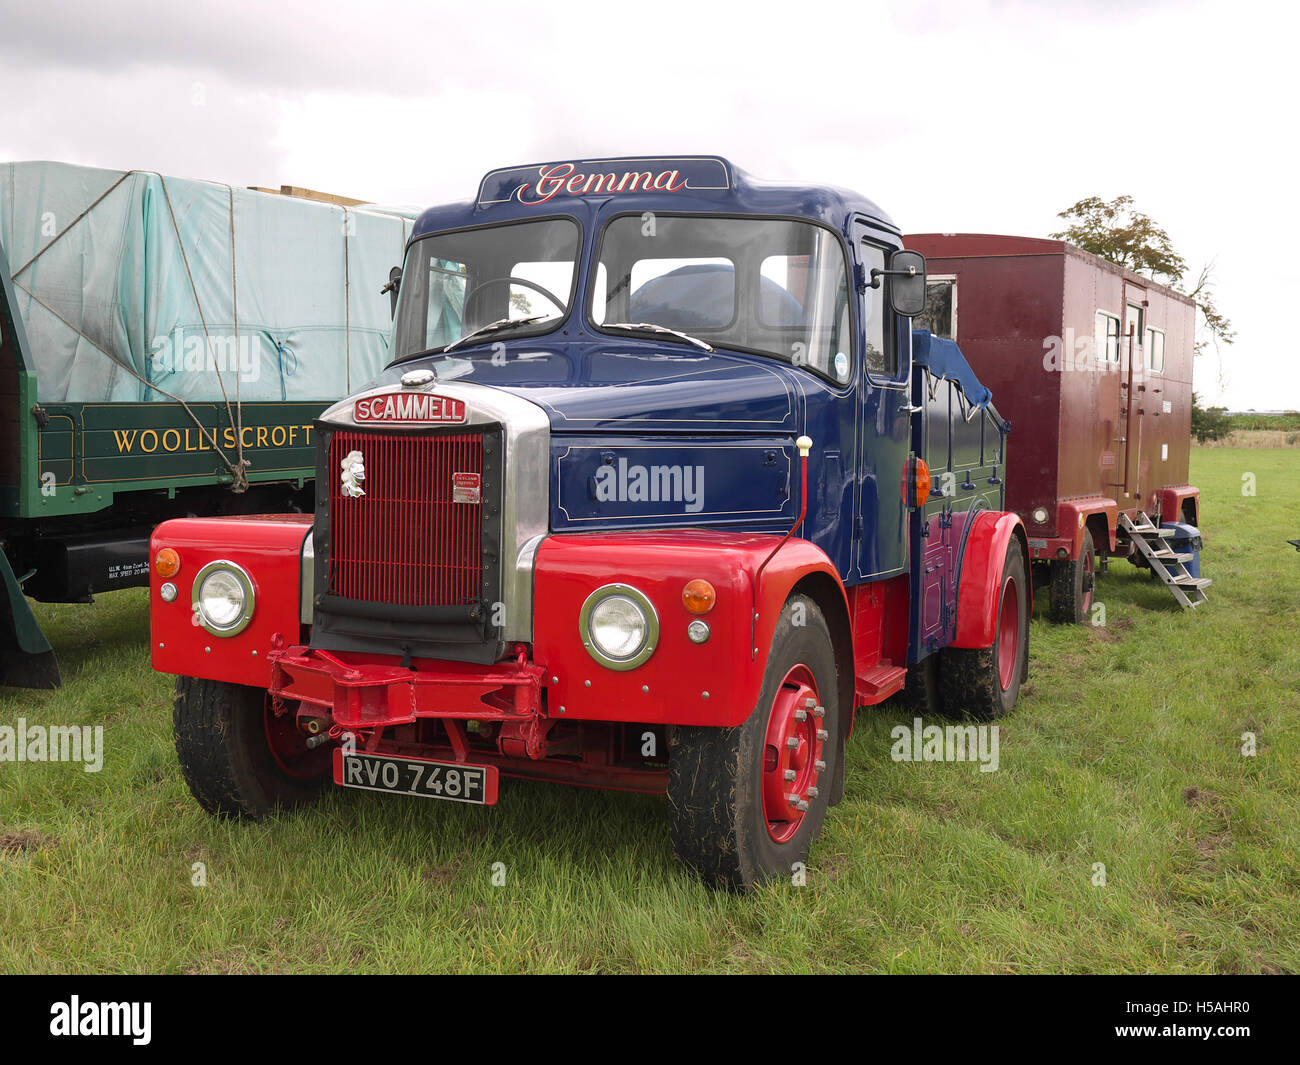 Gemma a vintage Scammell lorry and a living van on display at Lineside vintage weekend - Stock Image